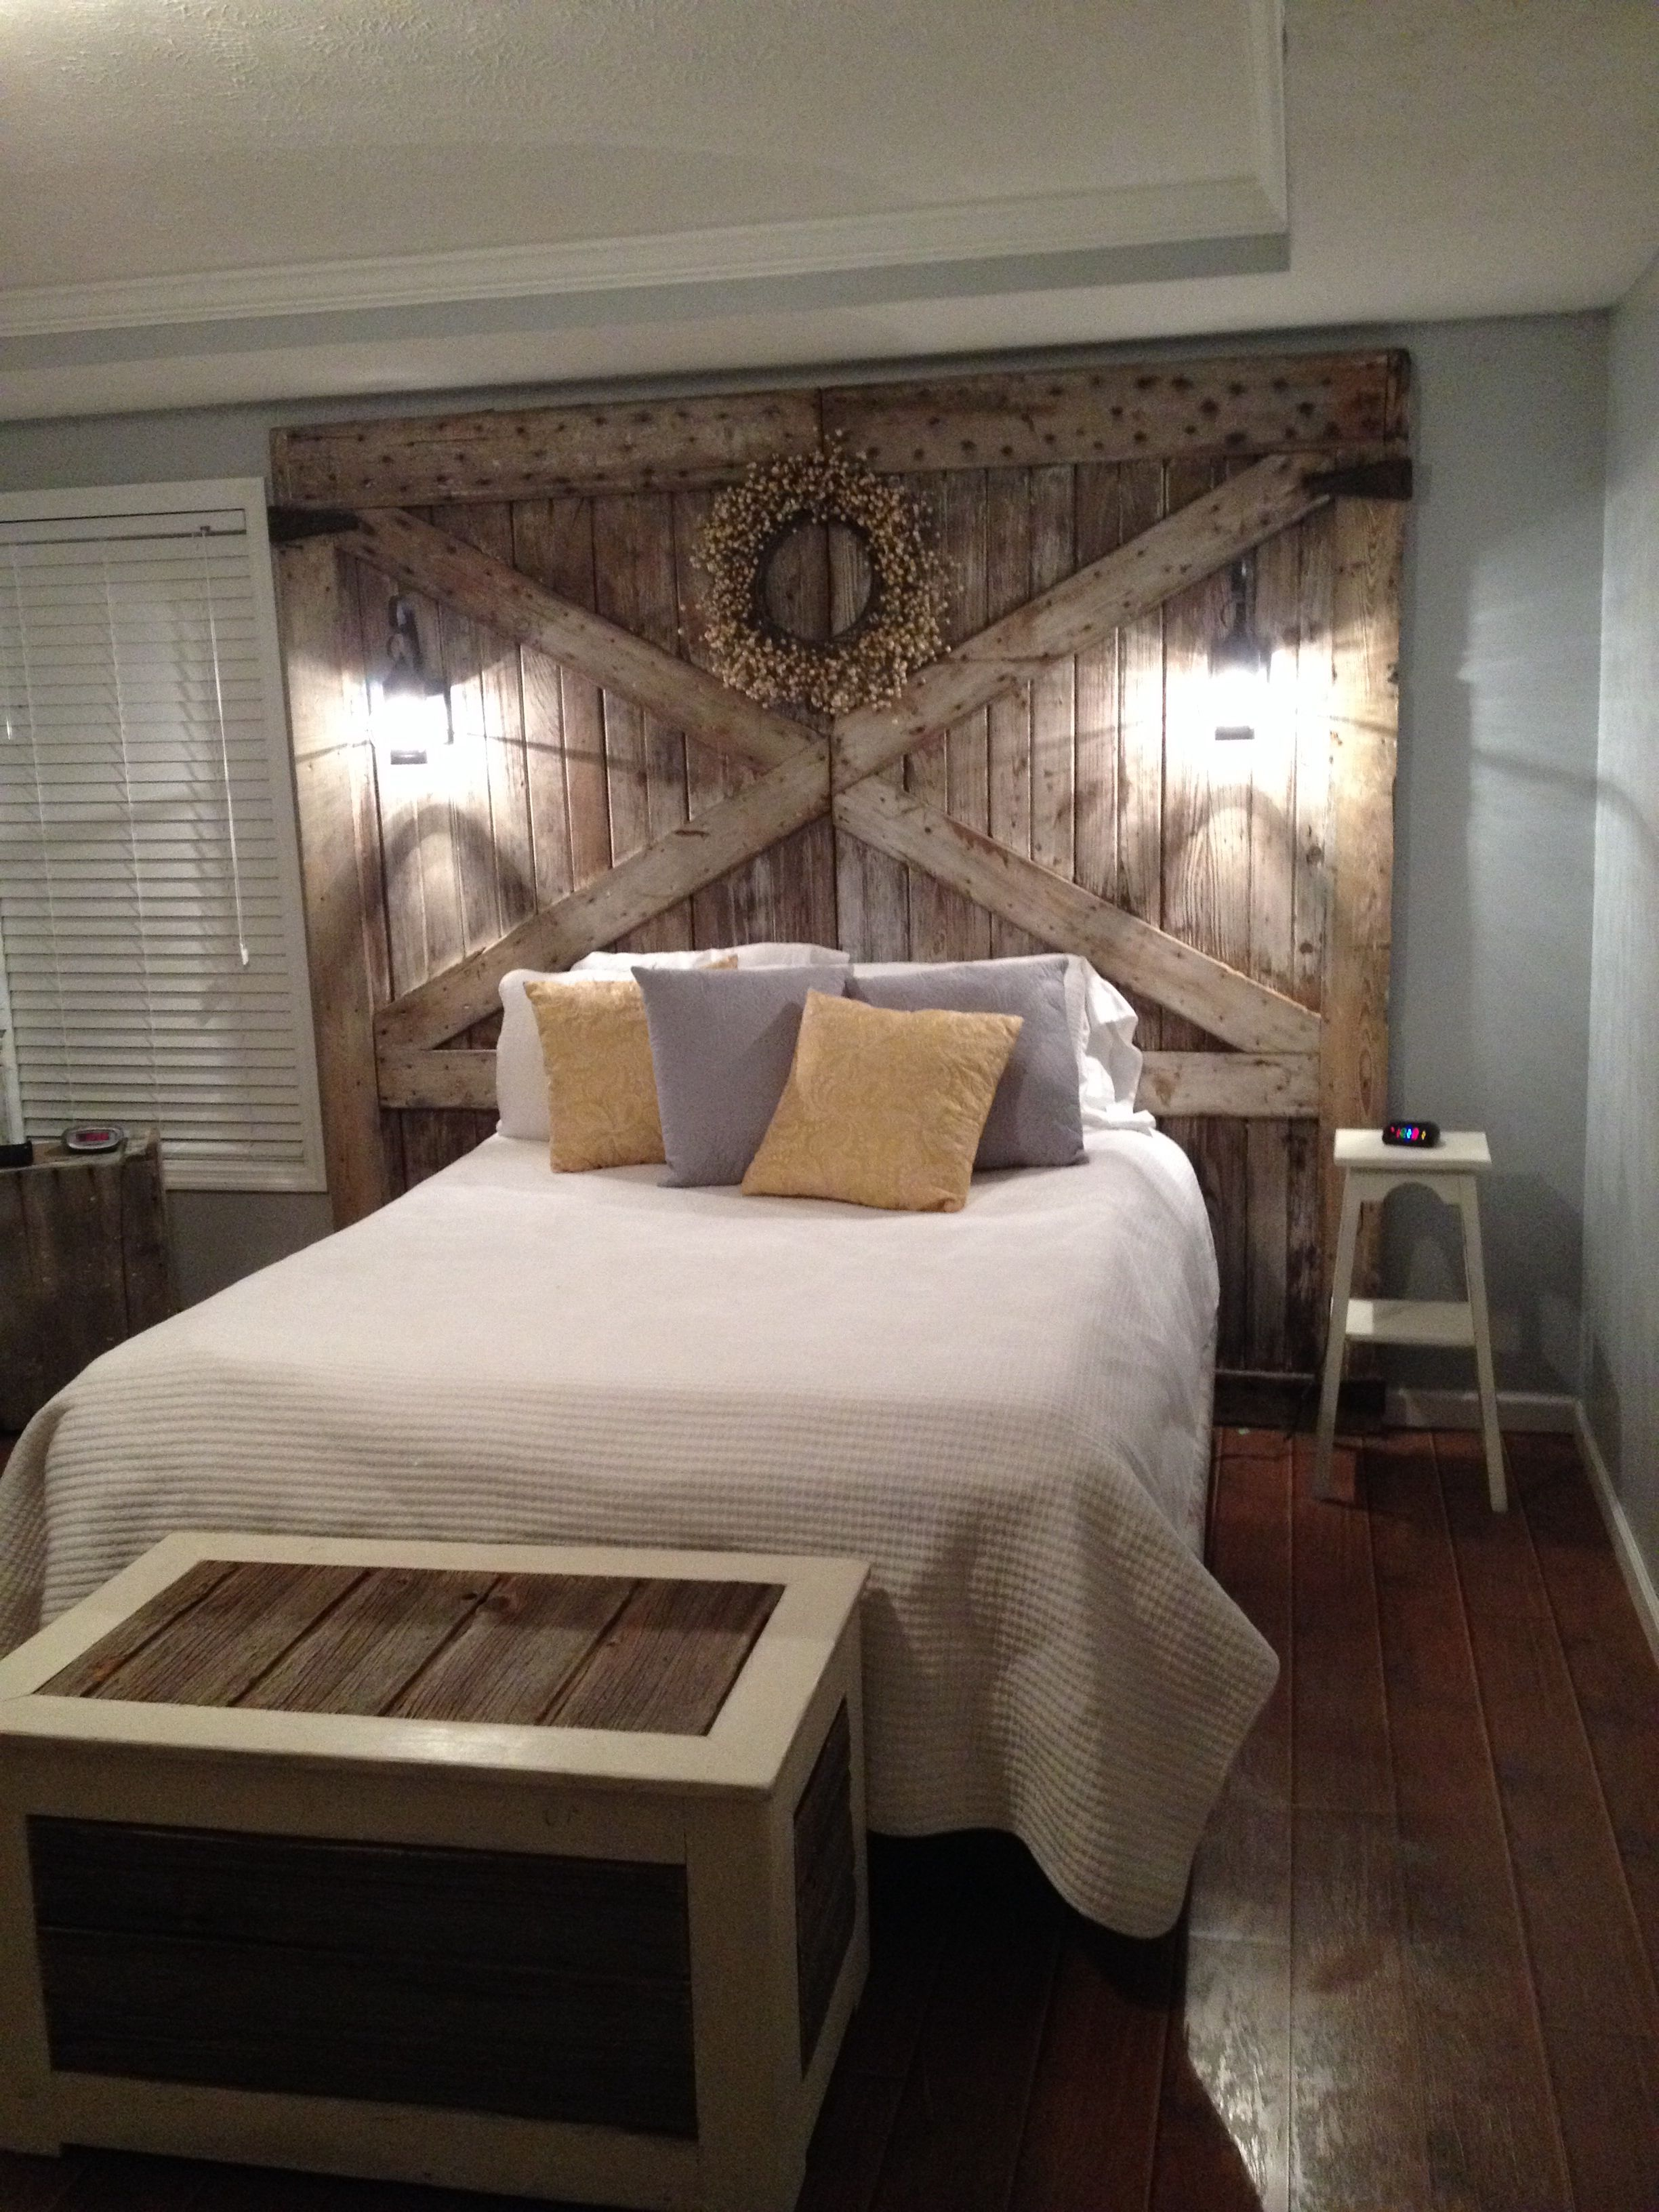 Barn wood headboard with lights Rustic bedroom